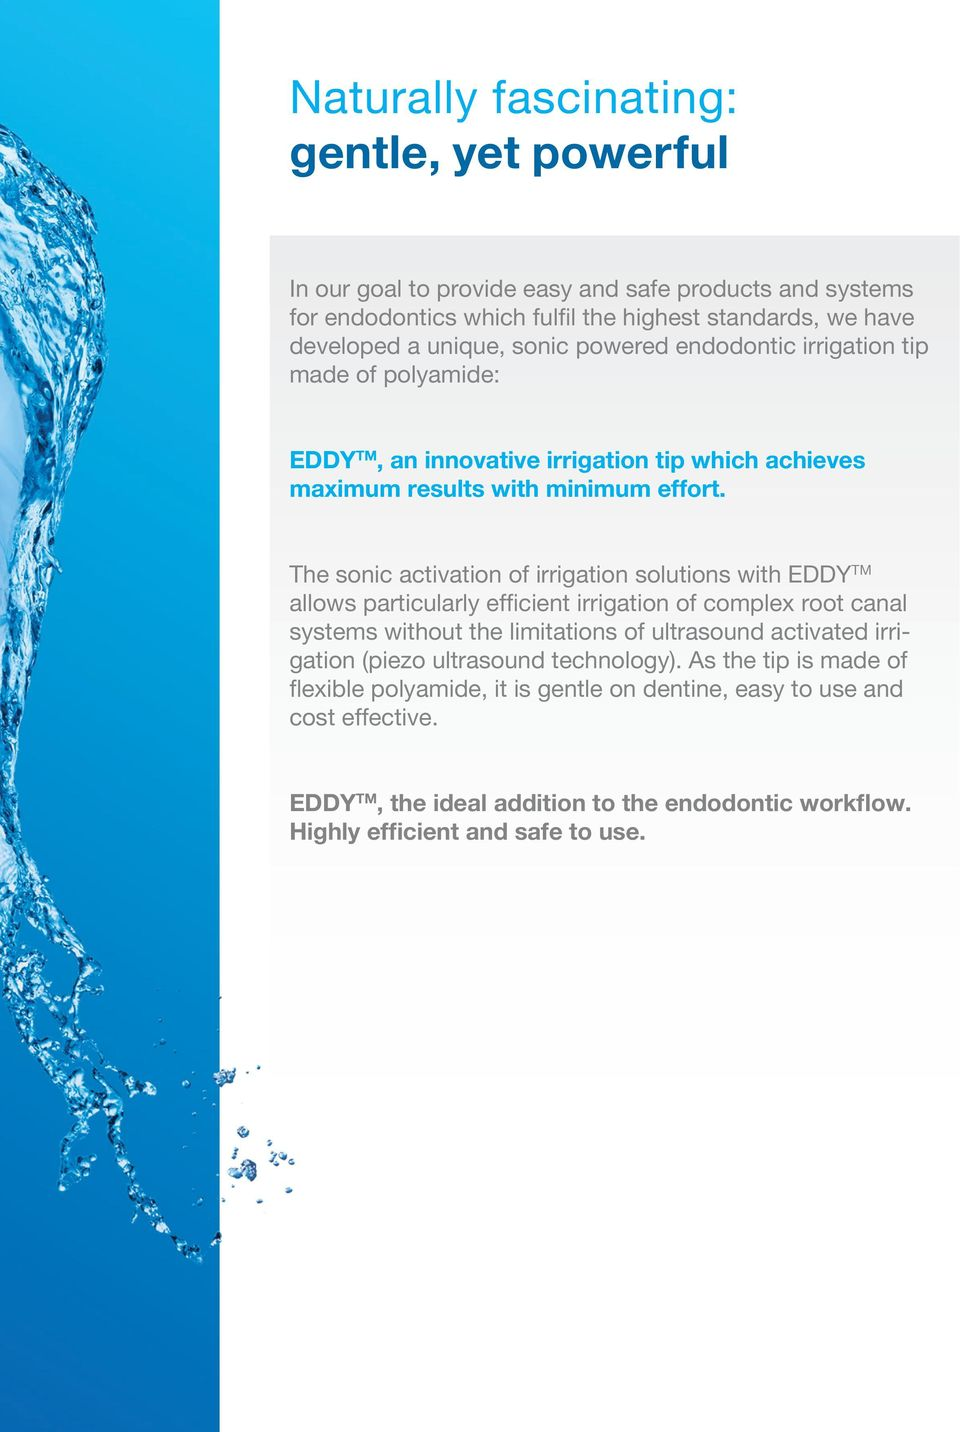 The sonic activation of irrigation solutions with EDDY TM allows particularly efficient irrigation of complex root canal systems without the limitations of ultrasound activated